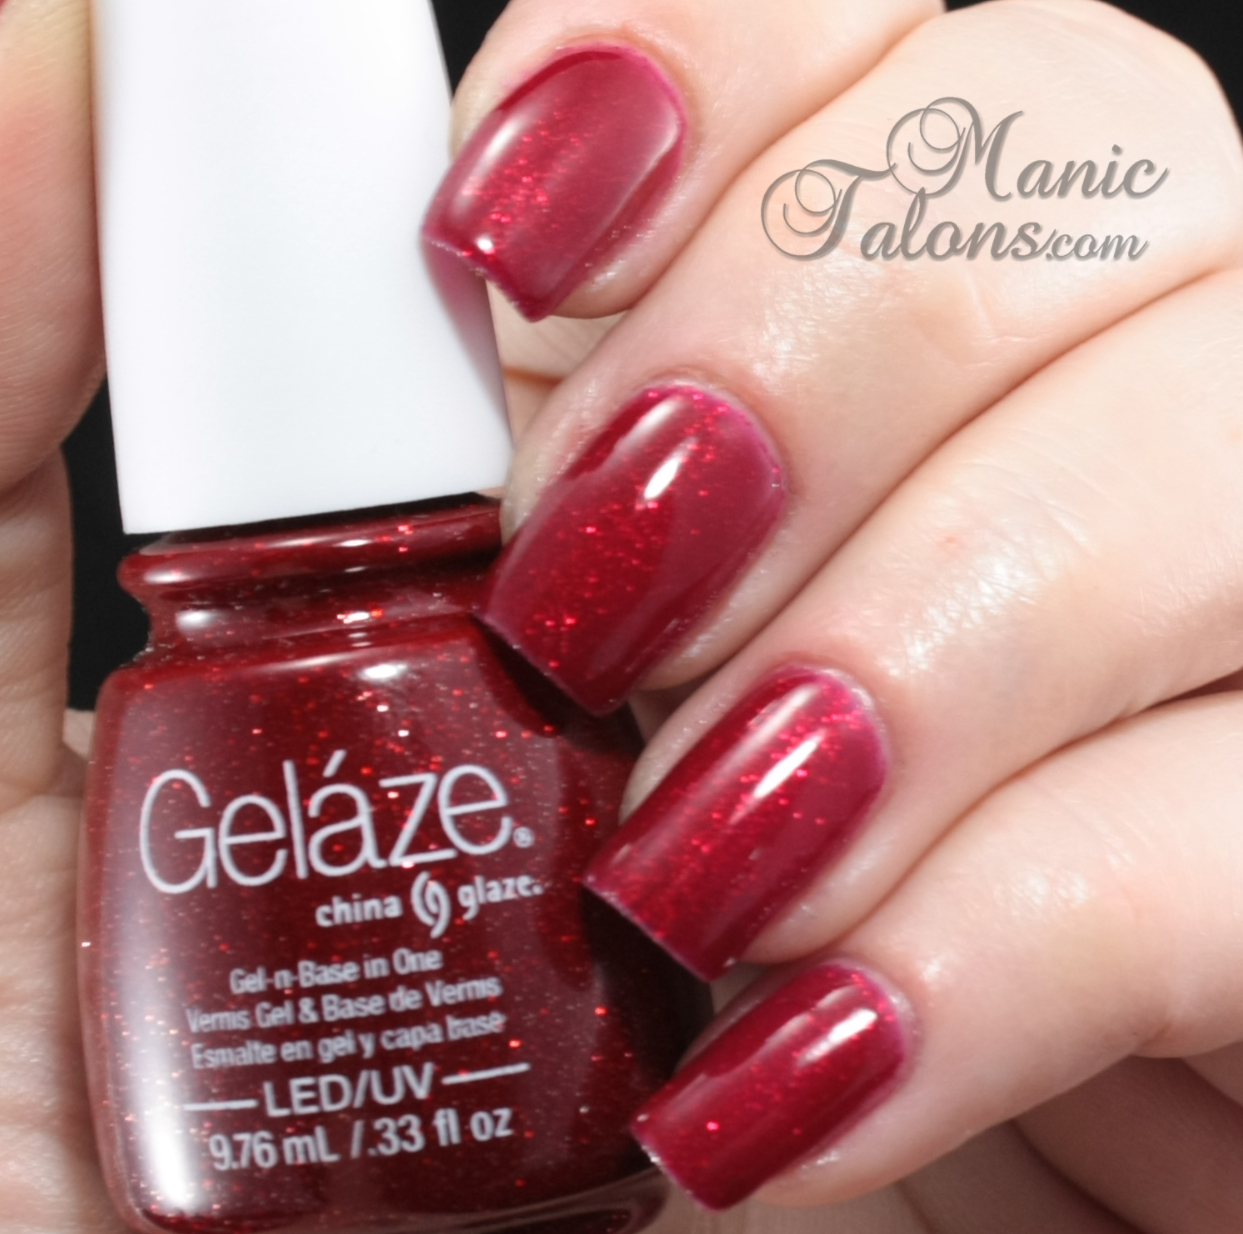 Manic Talons Nail Design Gelaze By China Glaze Review And Wear Test